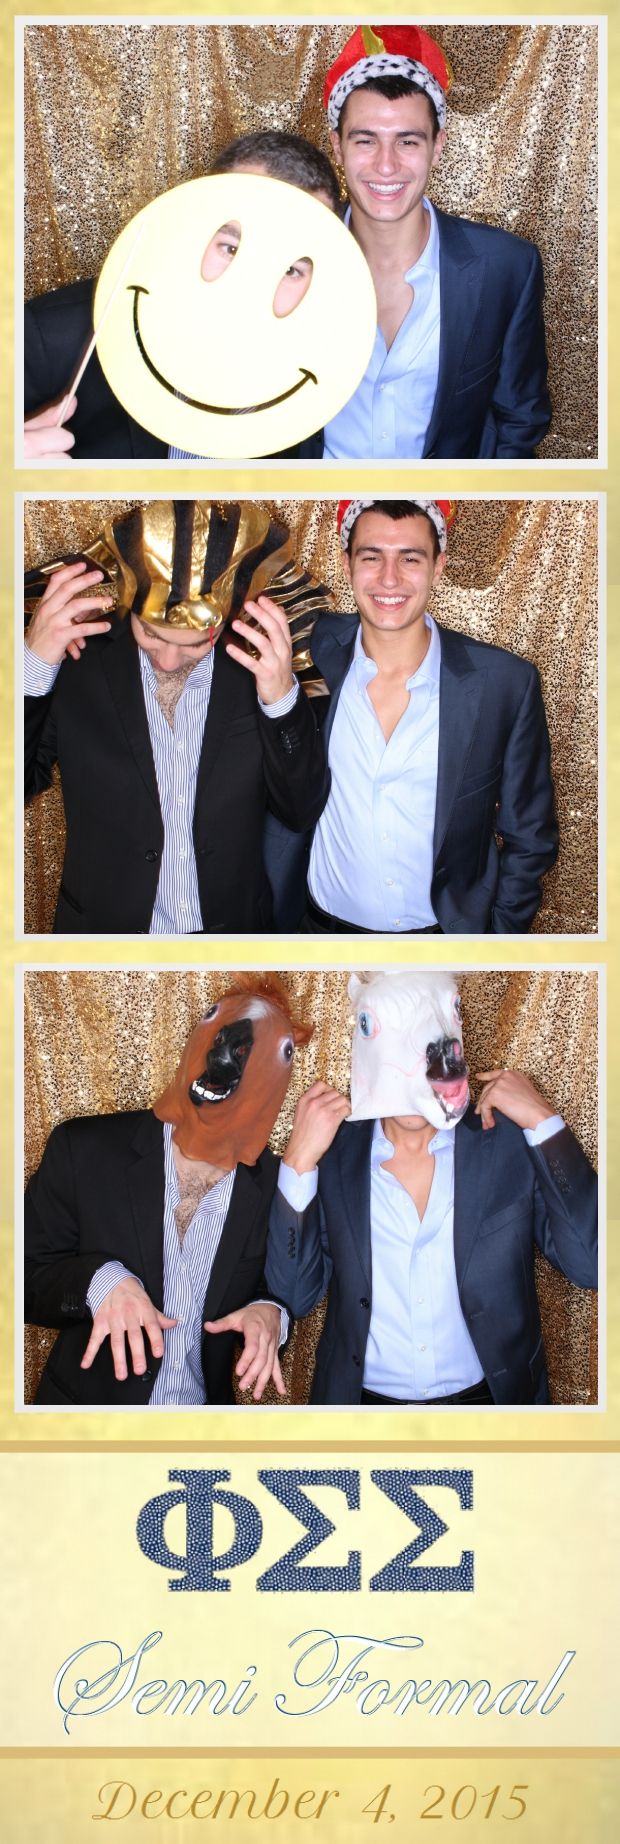 Guest House Events Photo Booth Phi Sigma Sigma Semi Formal (66).jpg